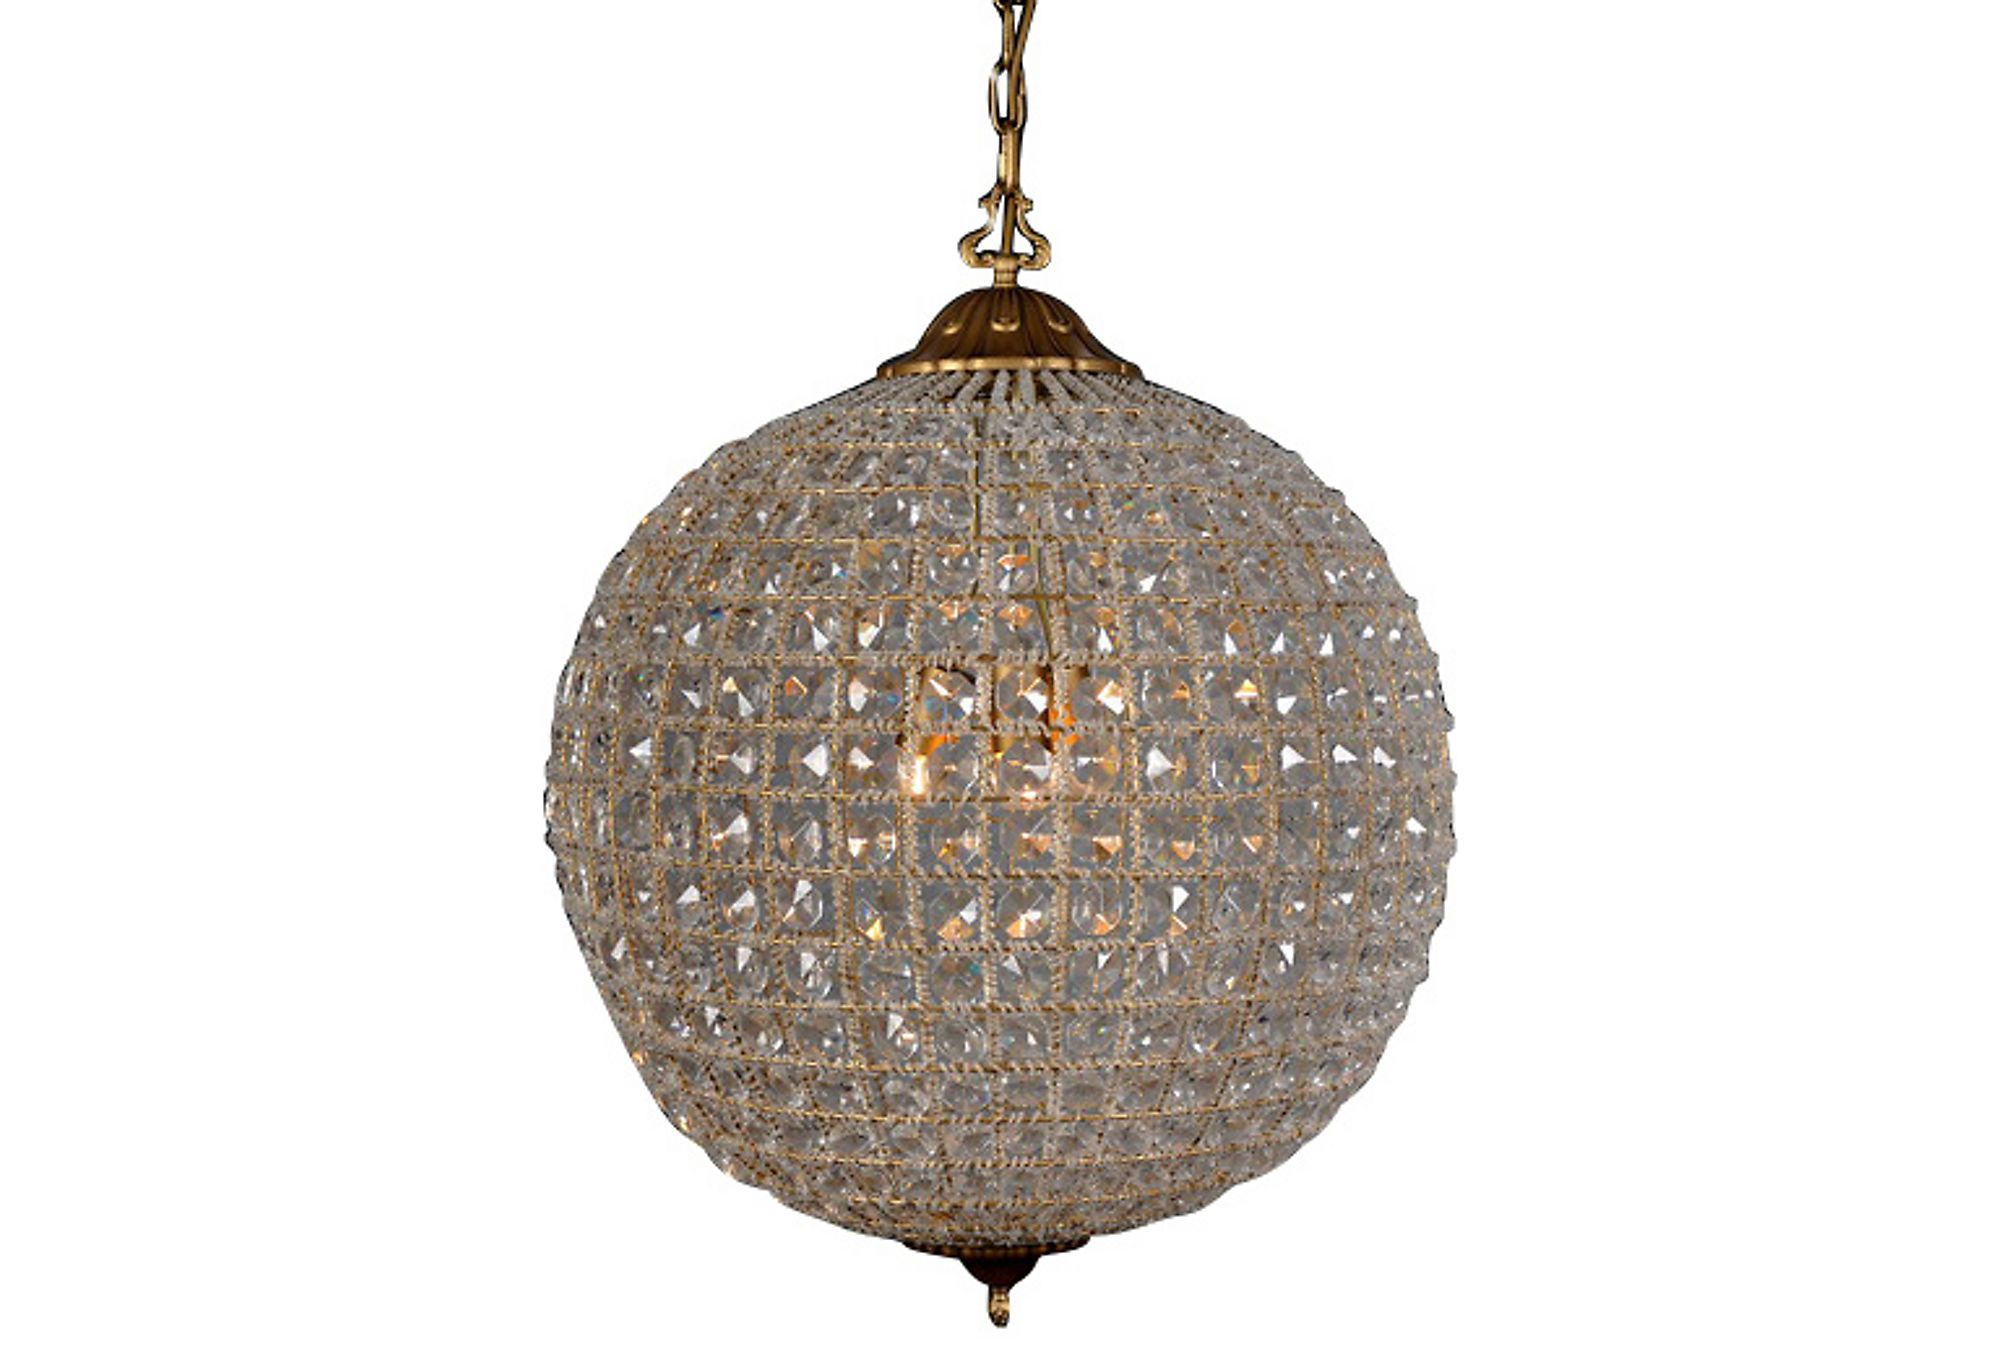 Cimberleigh crystal chandelier small ceiling chandeliers from cimberleigh crystal chandelier small ceiling chandeliers from one kings lane arubaitofo Images